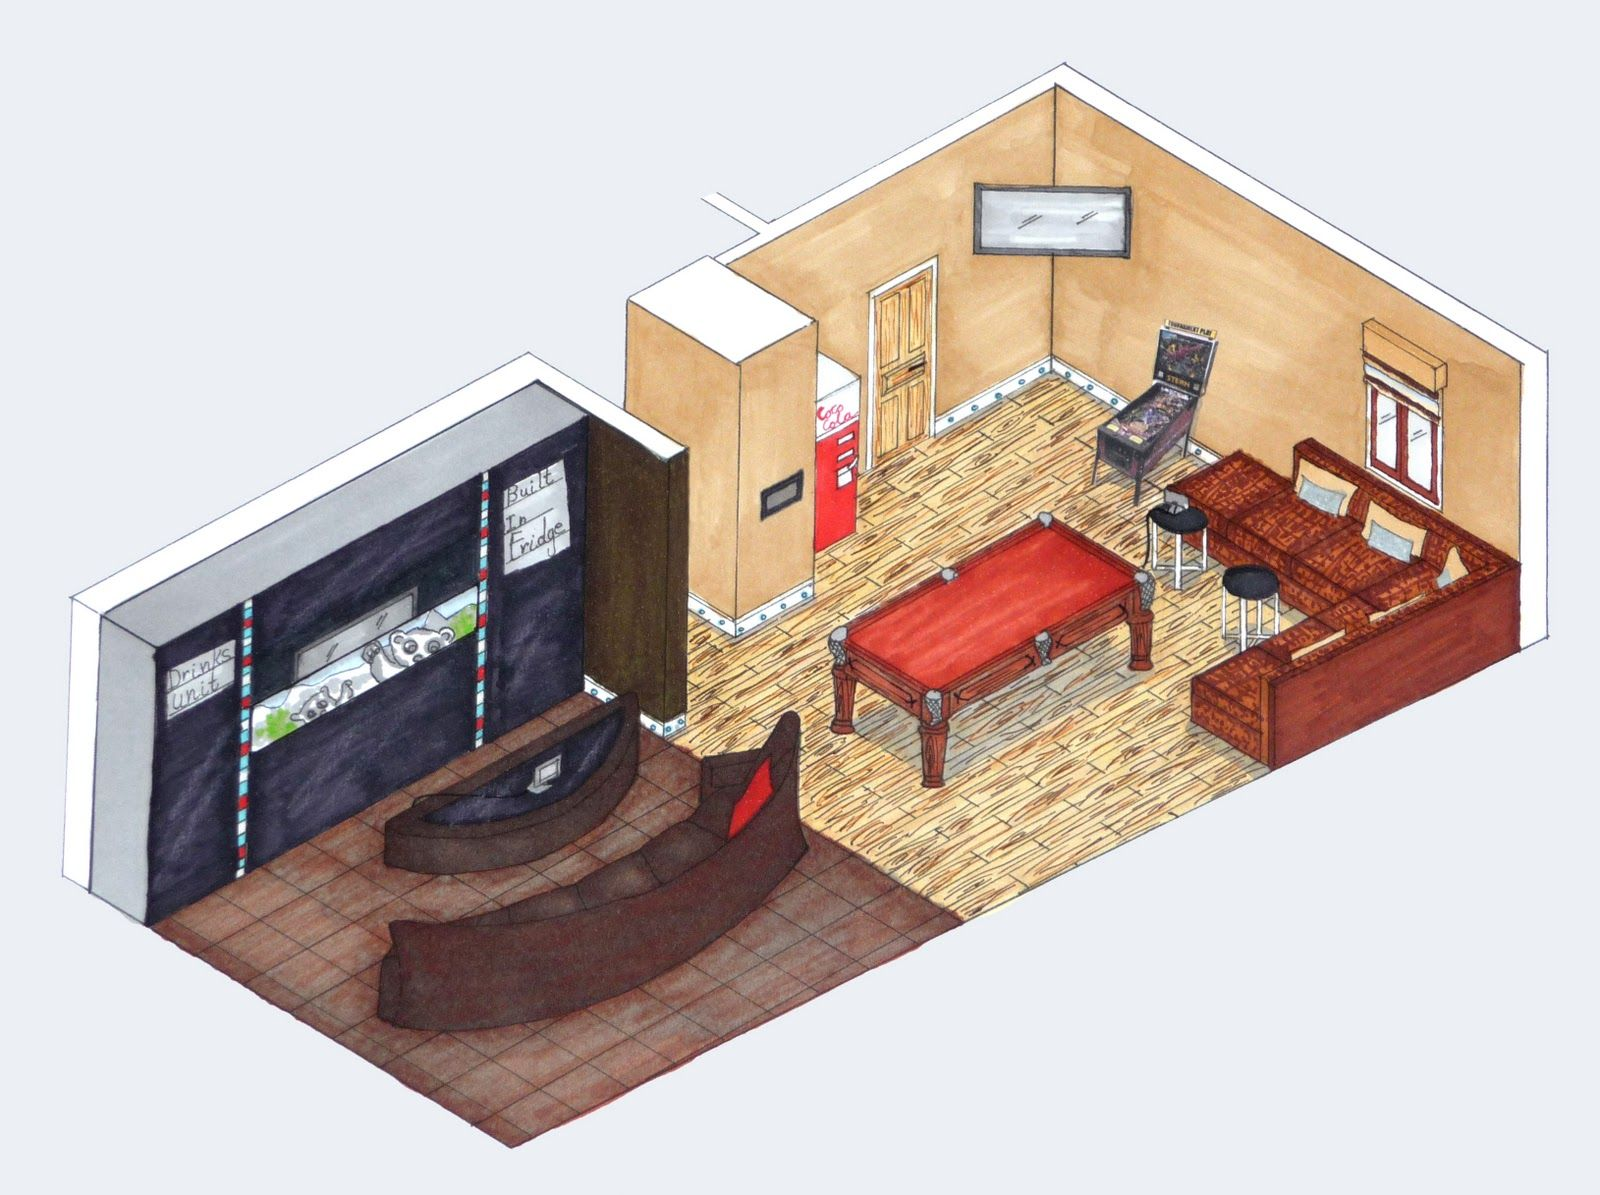 Image result for axonometric and Isometric   axonometric ... on house studio design, house art design, house painting design, house model design, house design blueprint, house autocad, sketchup house design, house template, product page design, house plans with furniture layouts, house green design, house layout design, house graphic design, green building design, house drawing, house study design, house construction, house perspective design, house light design, house architecture design,